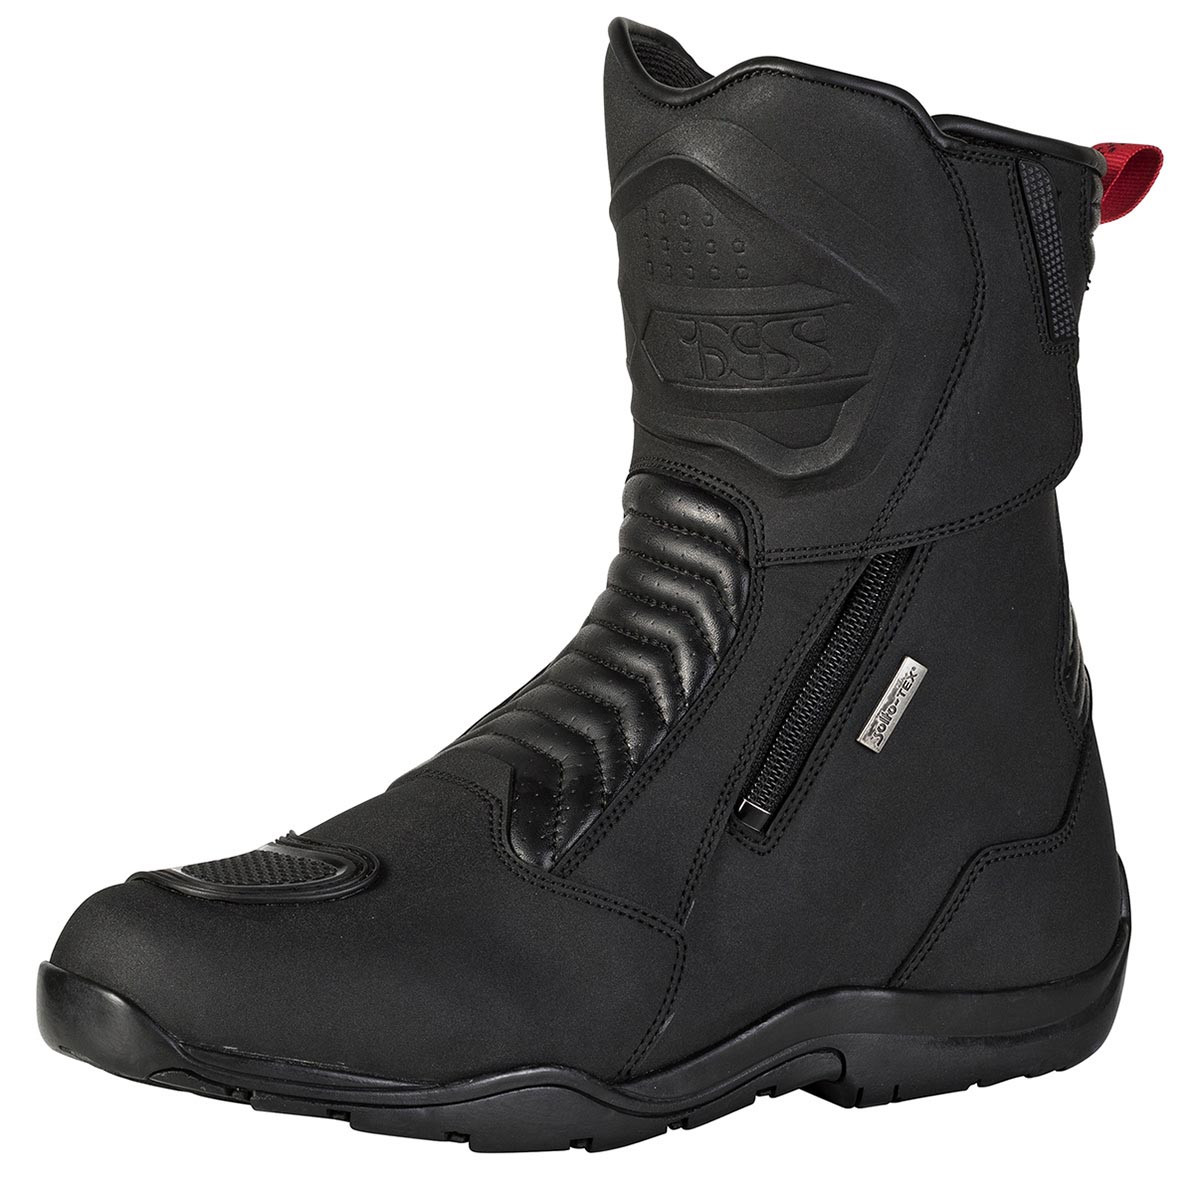 PACEGO ST BOOTS